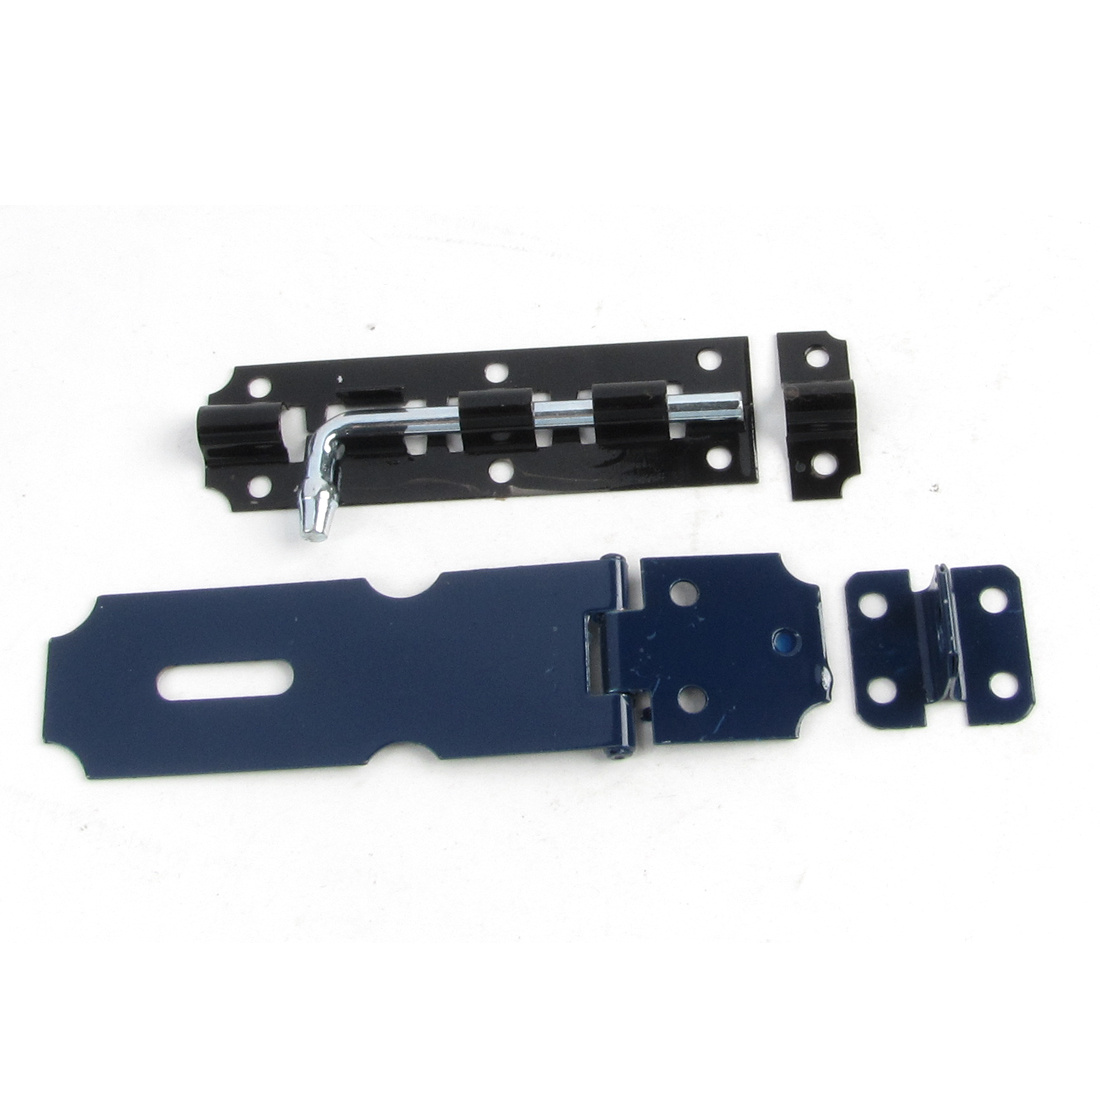 Garage Hardware Security Blue Metal Hasp Staple Black Barrel Bolt Set